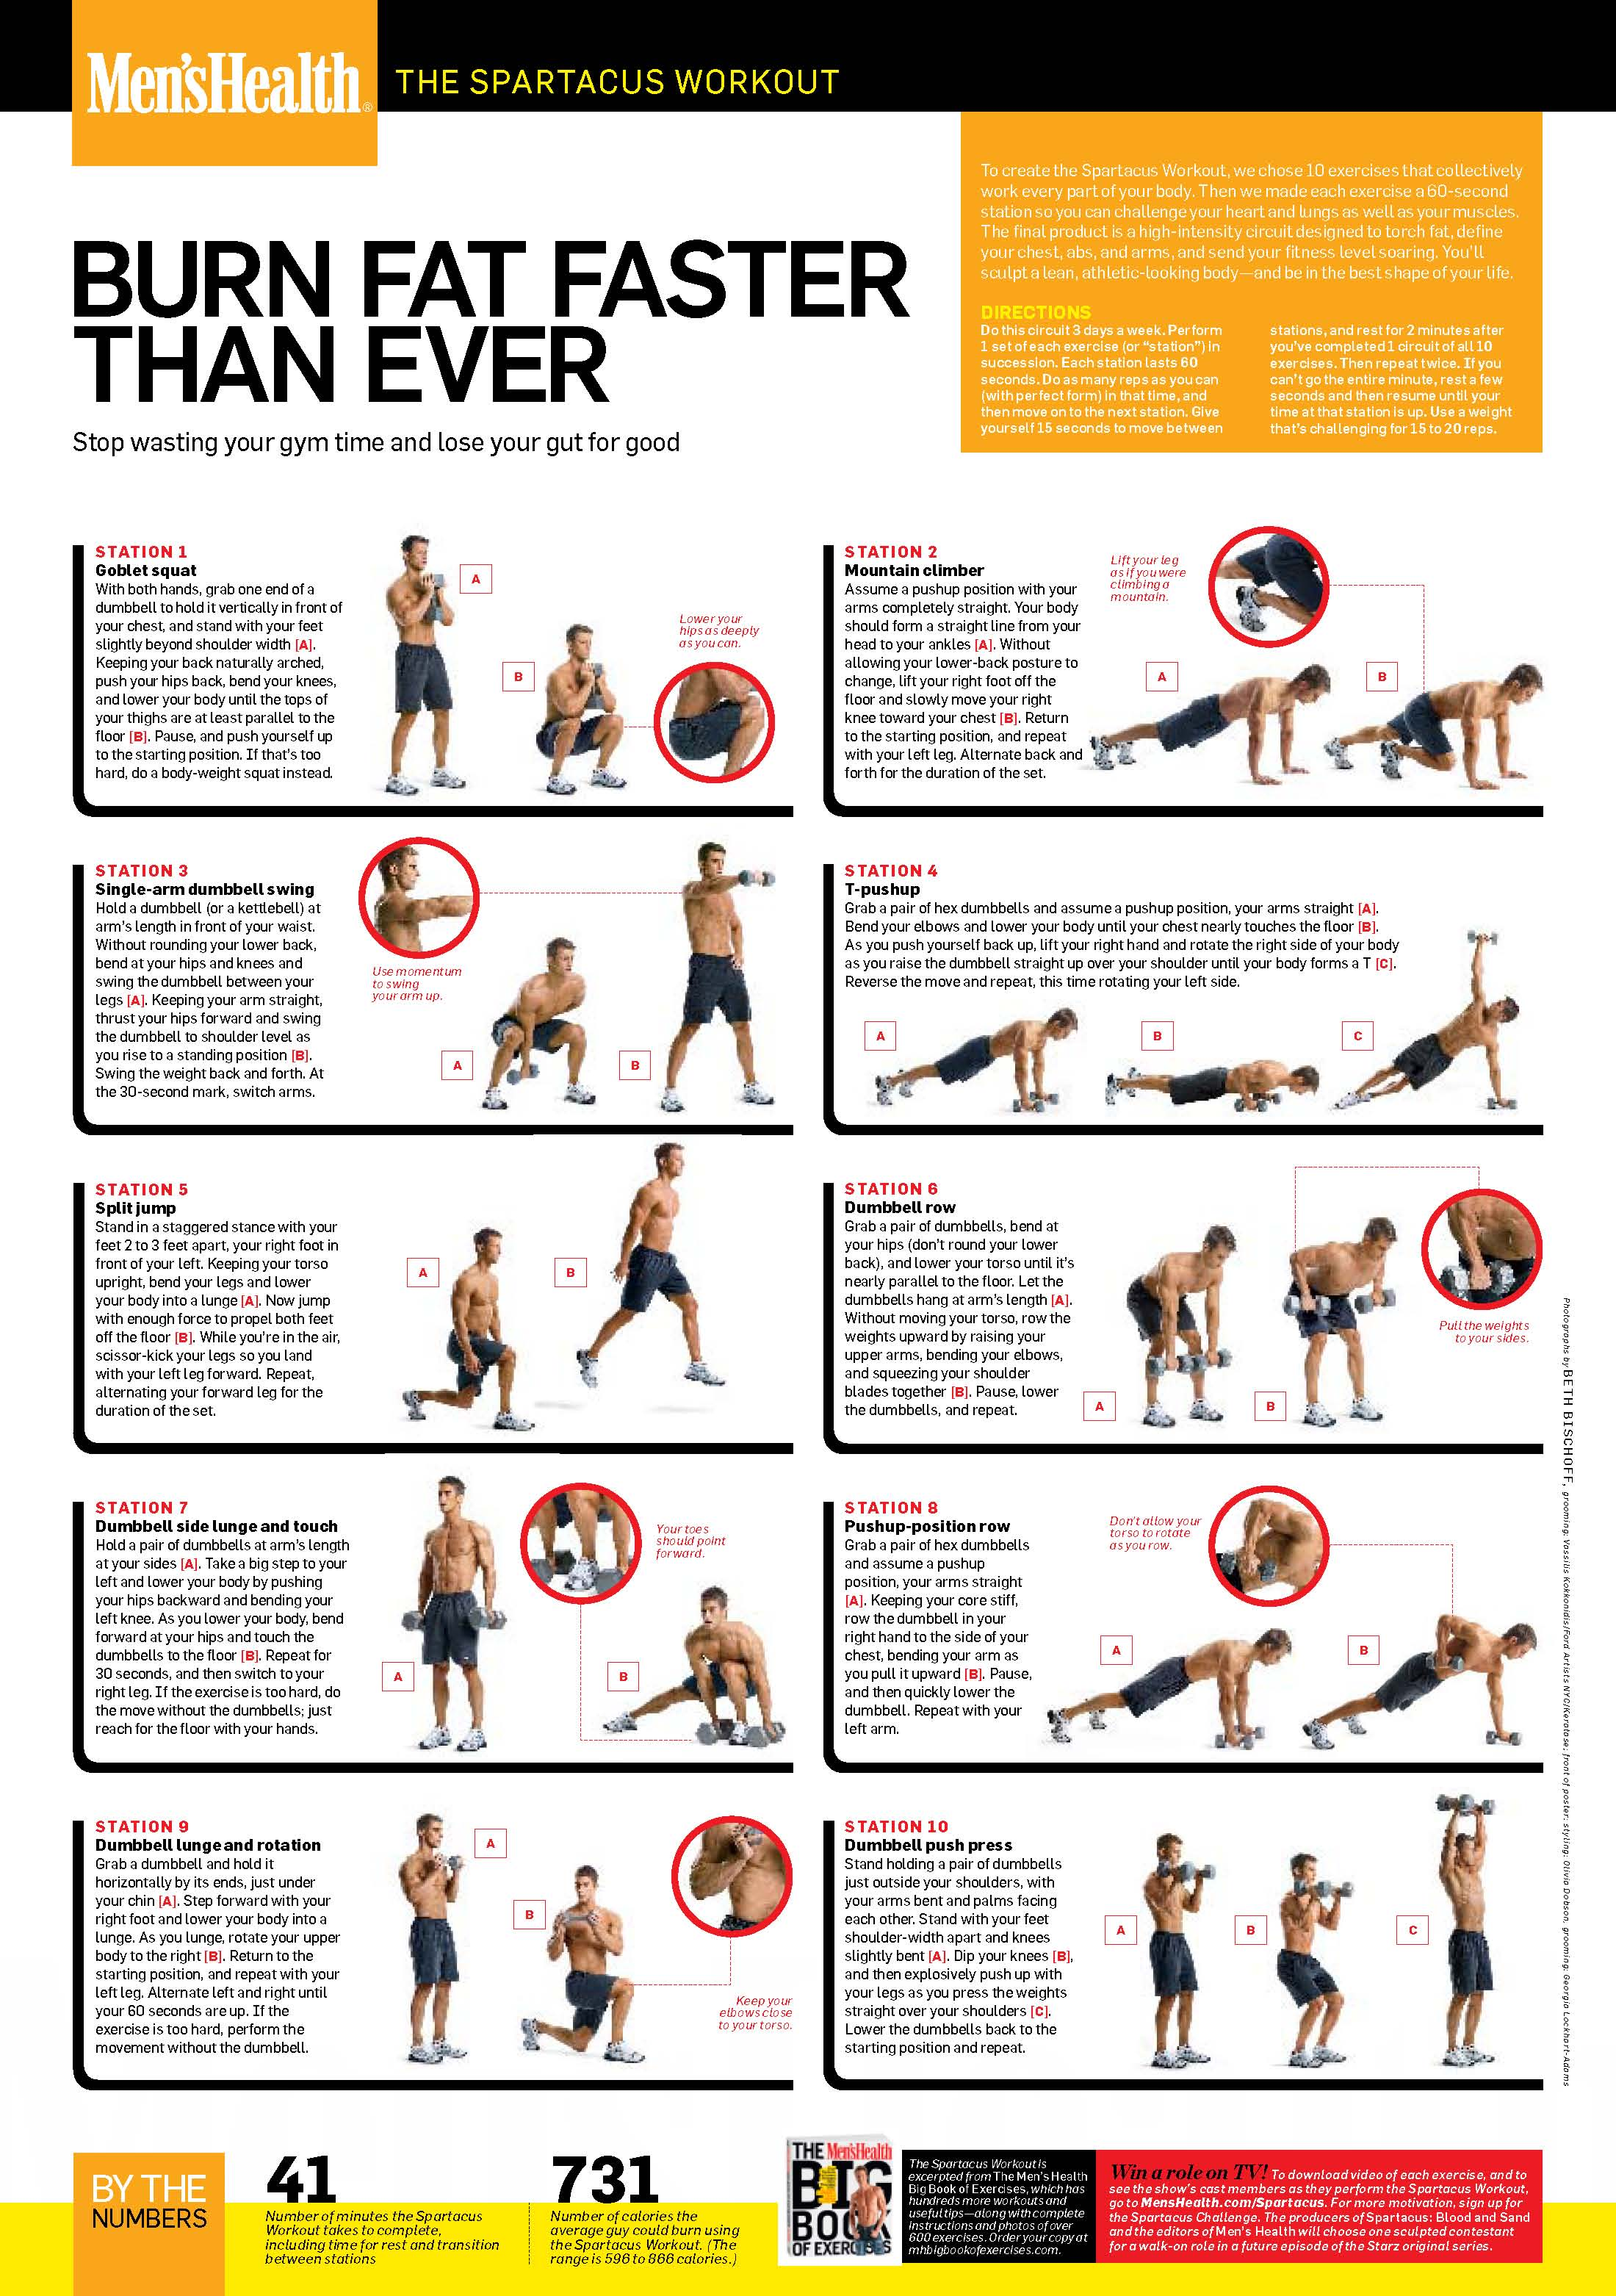 Burn Fat Faster than Ever